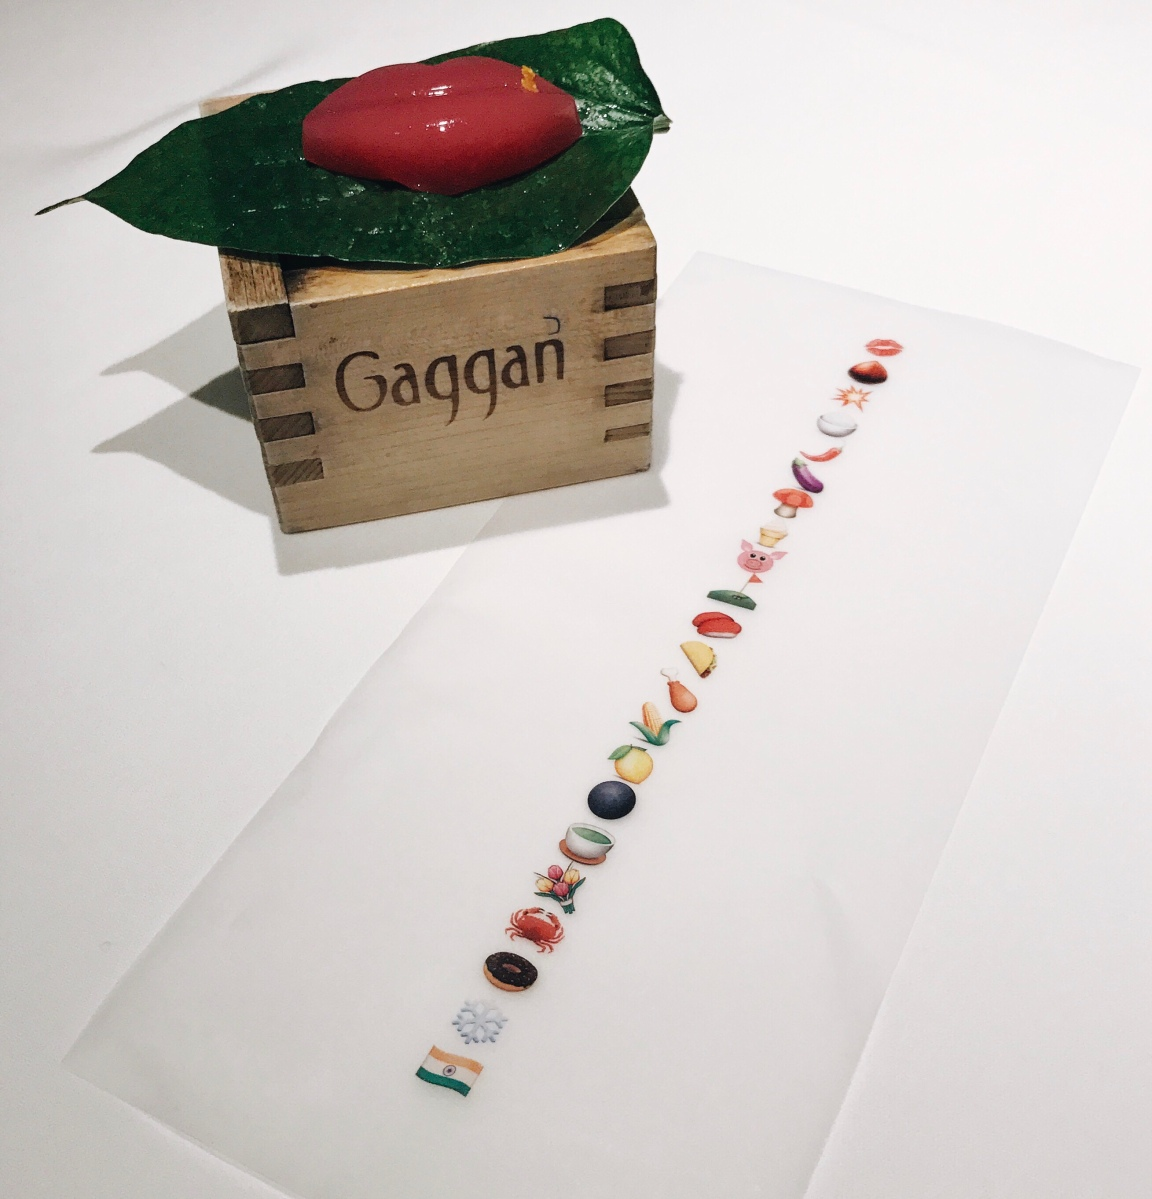 Restaurant Review: Gaggan